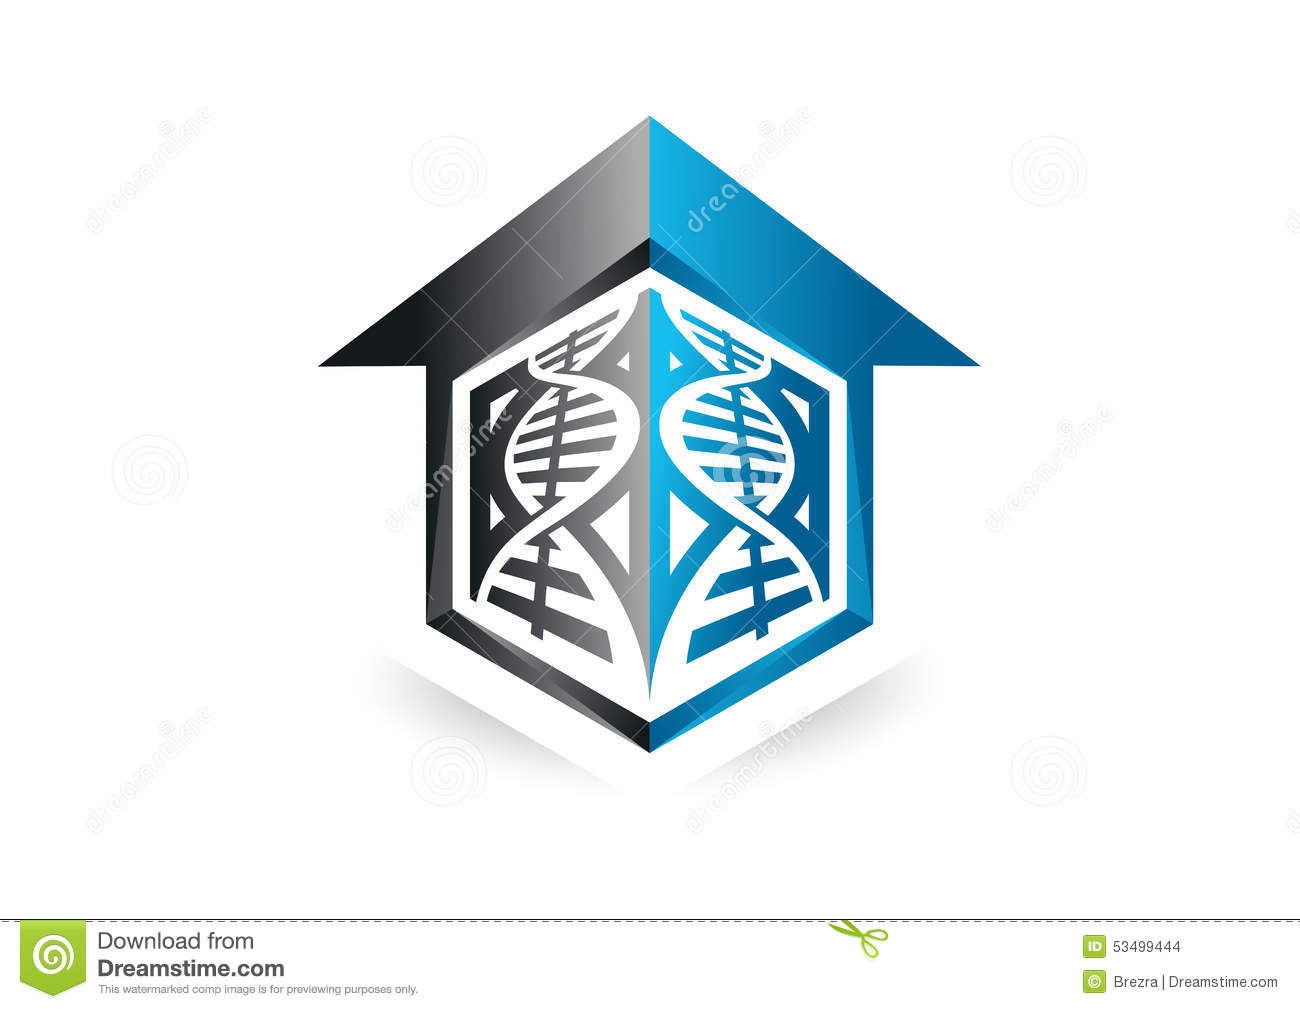 Dna lab home house modern business logo stock vector for Modern house logo